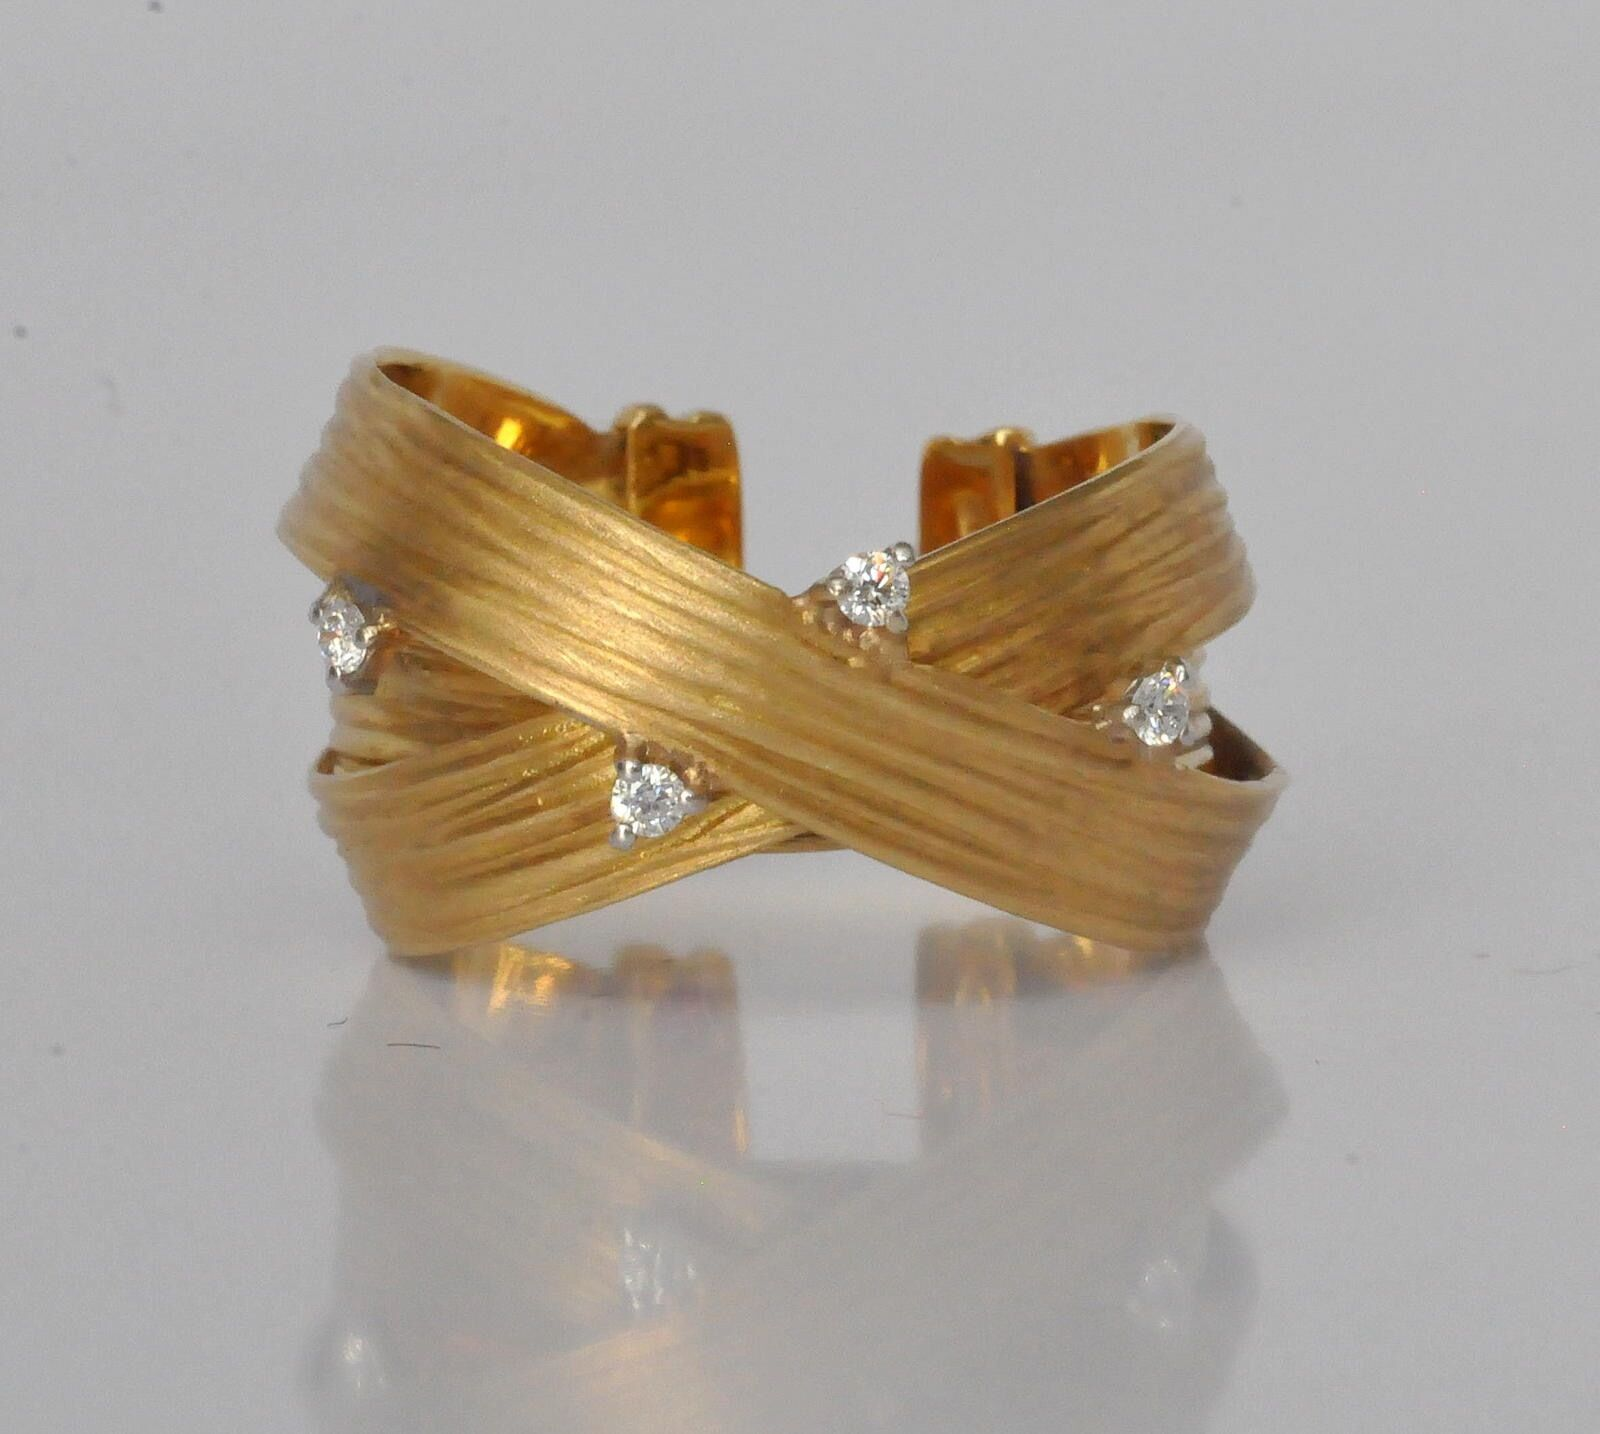 Roberto Coin Crossover Diamond Ring Sz 7-8 Yellow Gold  New